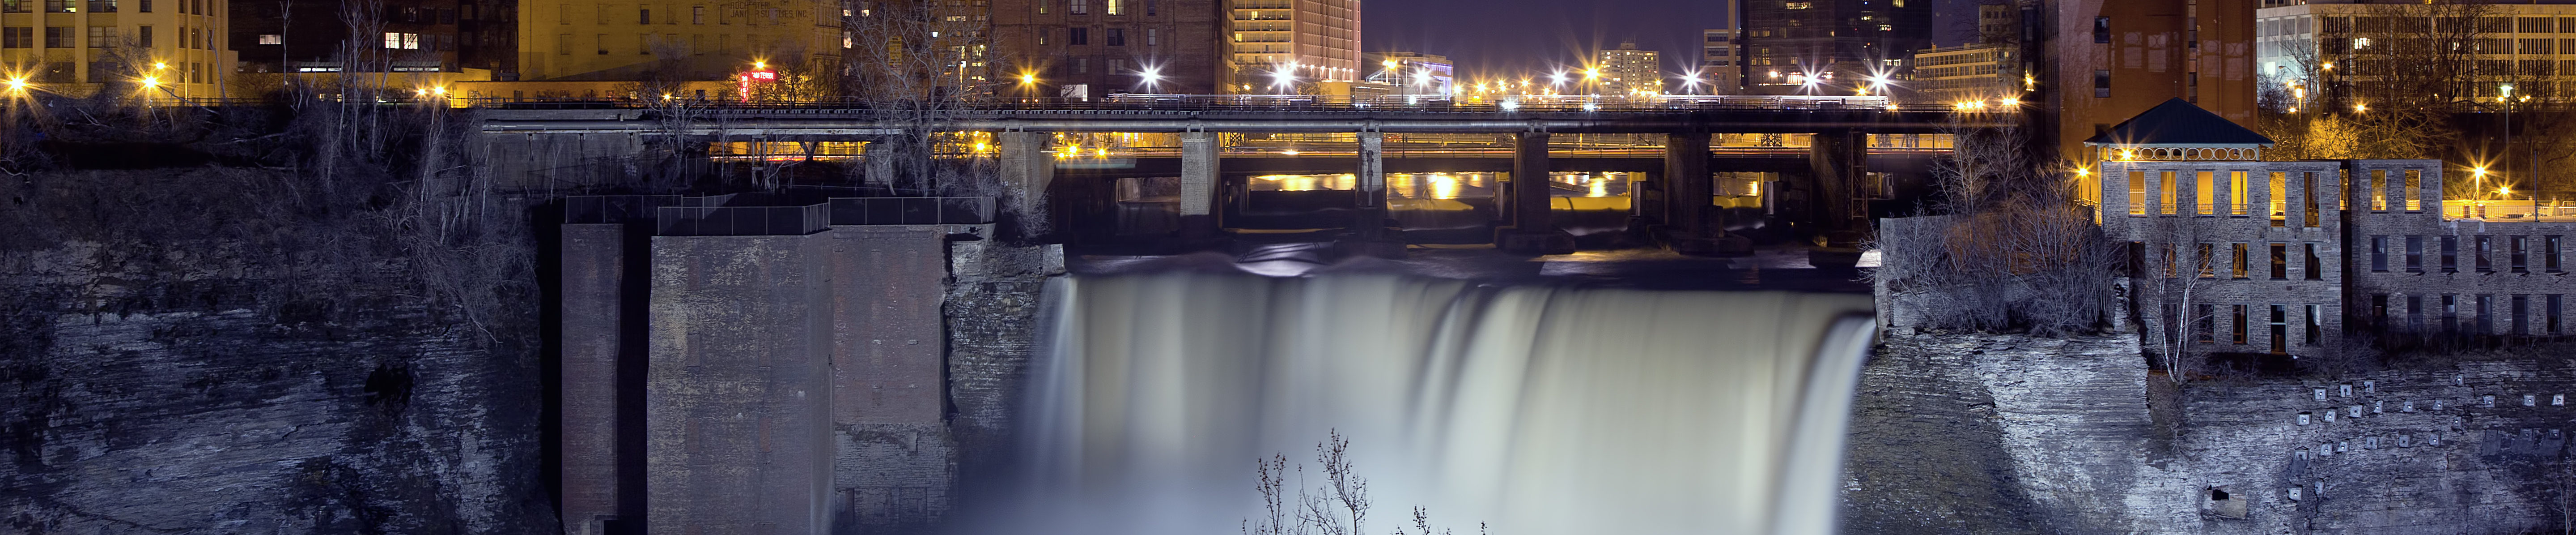 This is an image of the Genessee River Dam in Rochester. ASTA-USA provides professional translation services in this city.